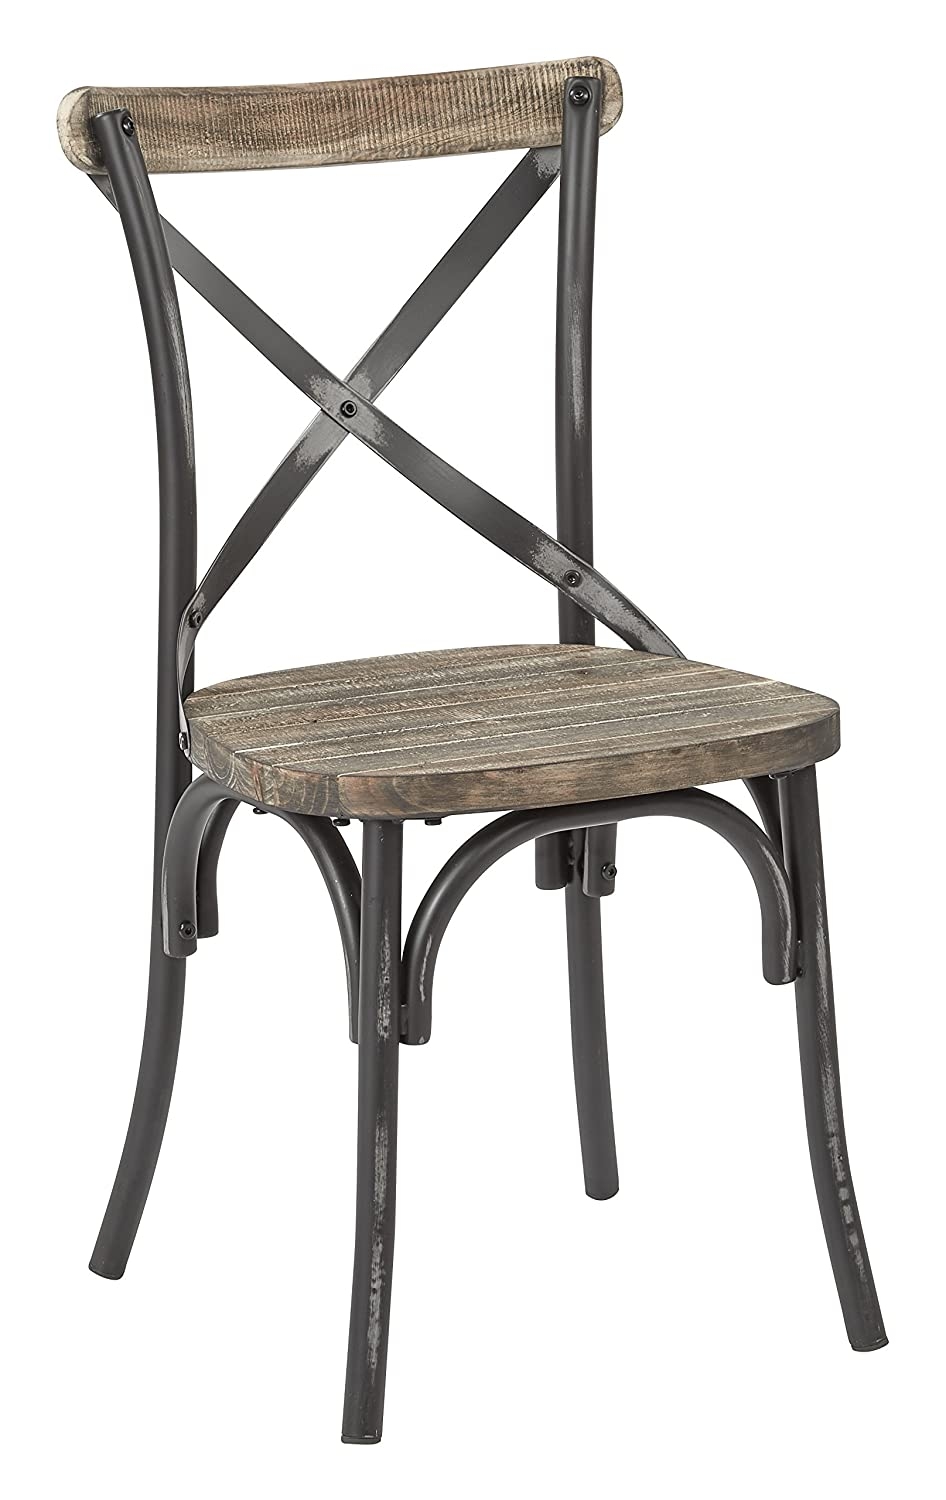 Amazon.com: OSP Designs Somerset X-Back Antique Metal Chair with Hardwood  Rustic Seat Finish, Turquoise/Walnut: Kitchen & Dining - Amazon.com: OSP Designs Somerset X-Back Antique Metal Chair With